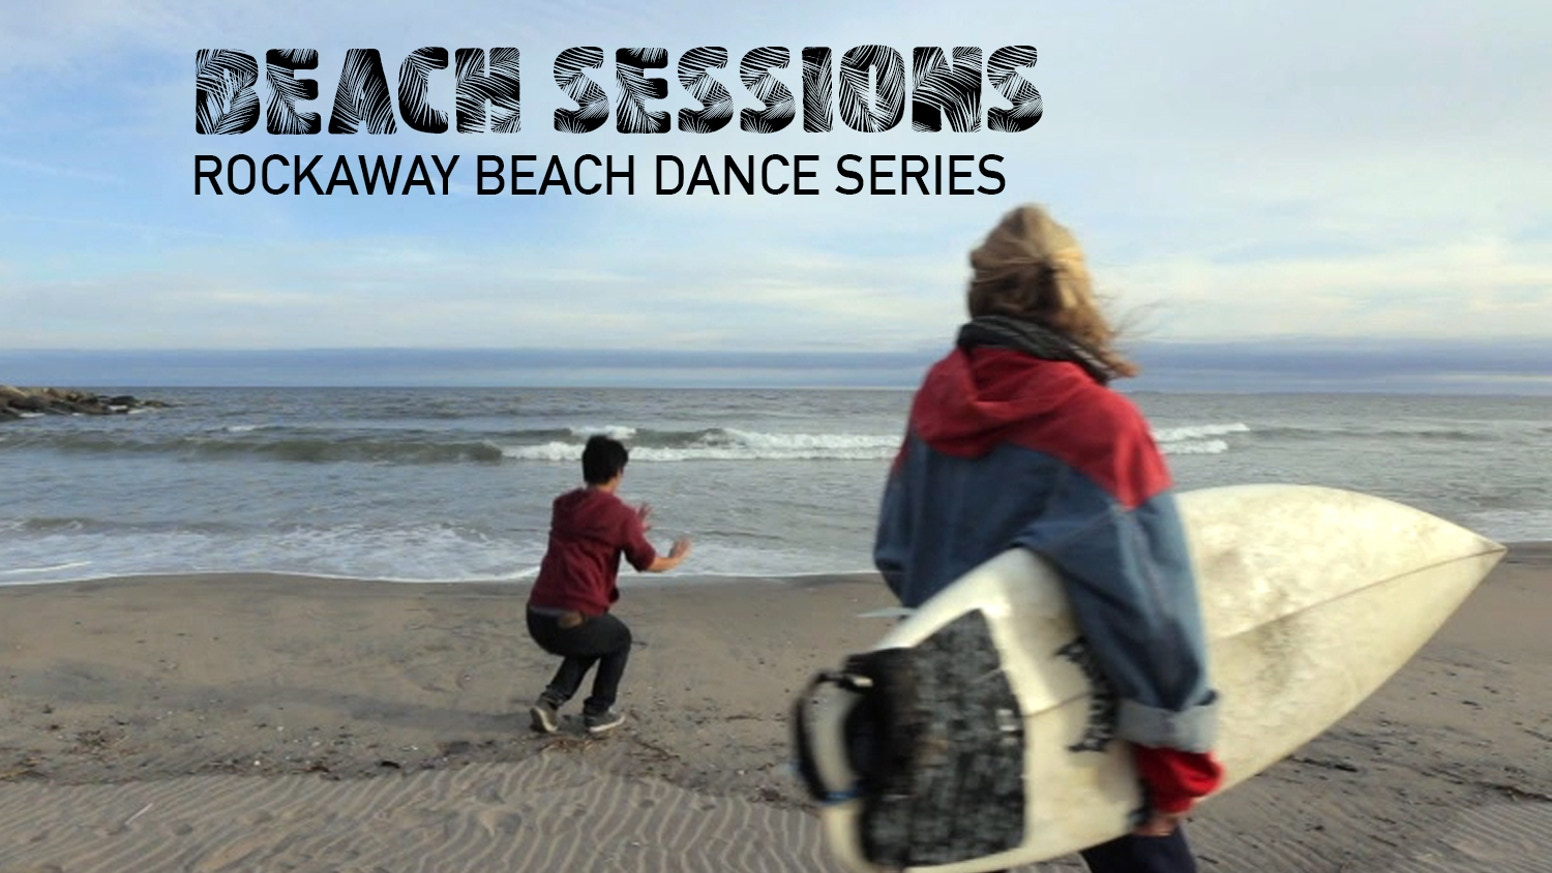 BeachSessionskicks off its inaugural season on August 1st and continues for four consecutive Saturdays with two free performances at 4pm and 6pm, through August 22nd, 2015.